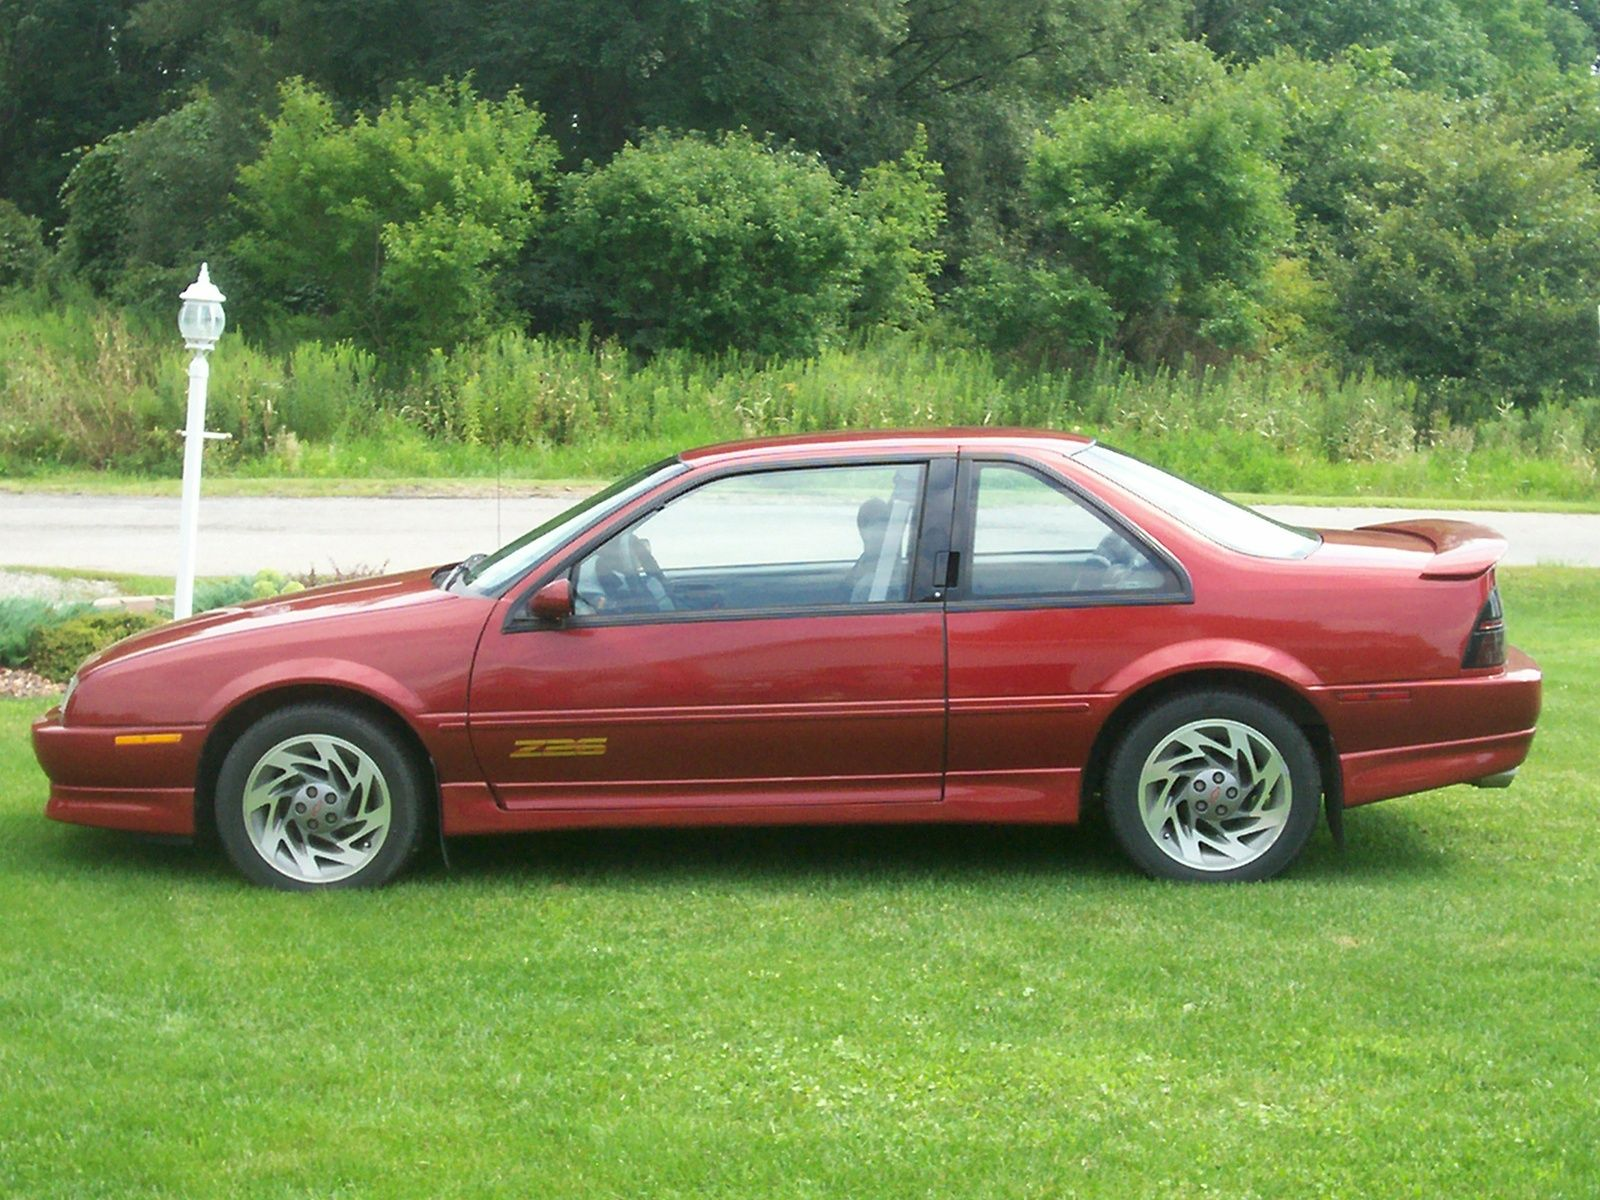 hight resolution of 1996 chevrolet beretta 2 dr z26 coupe